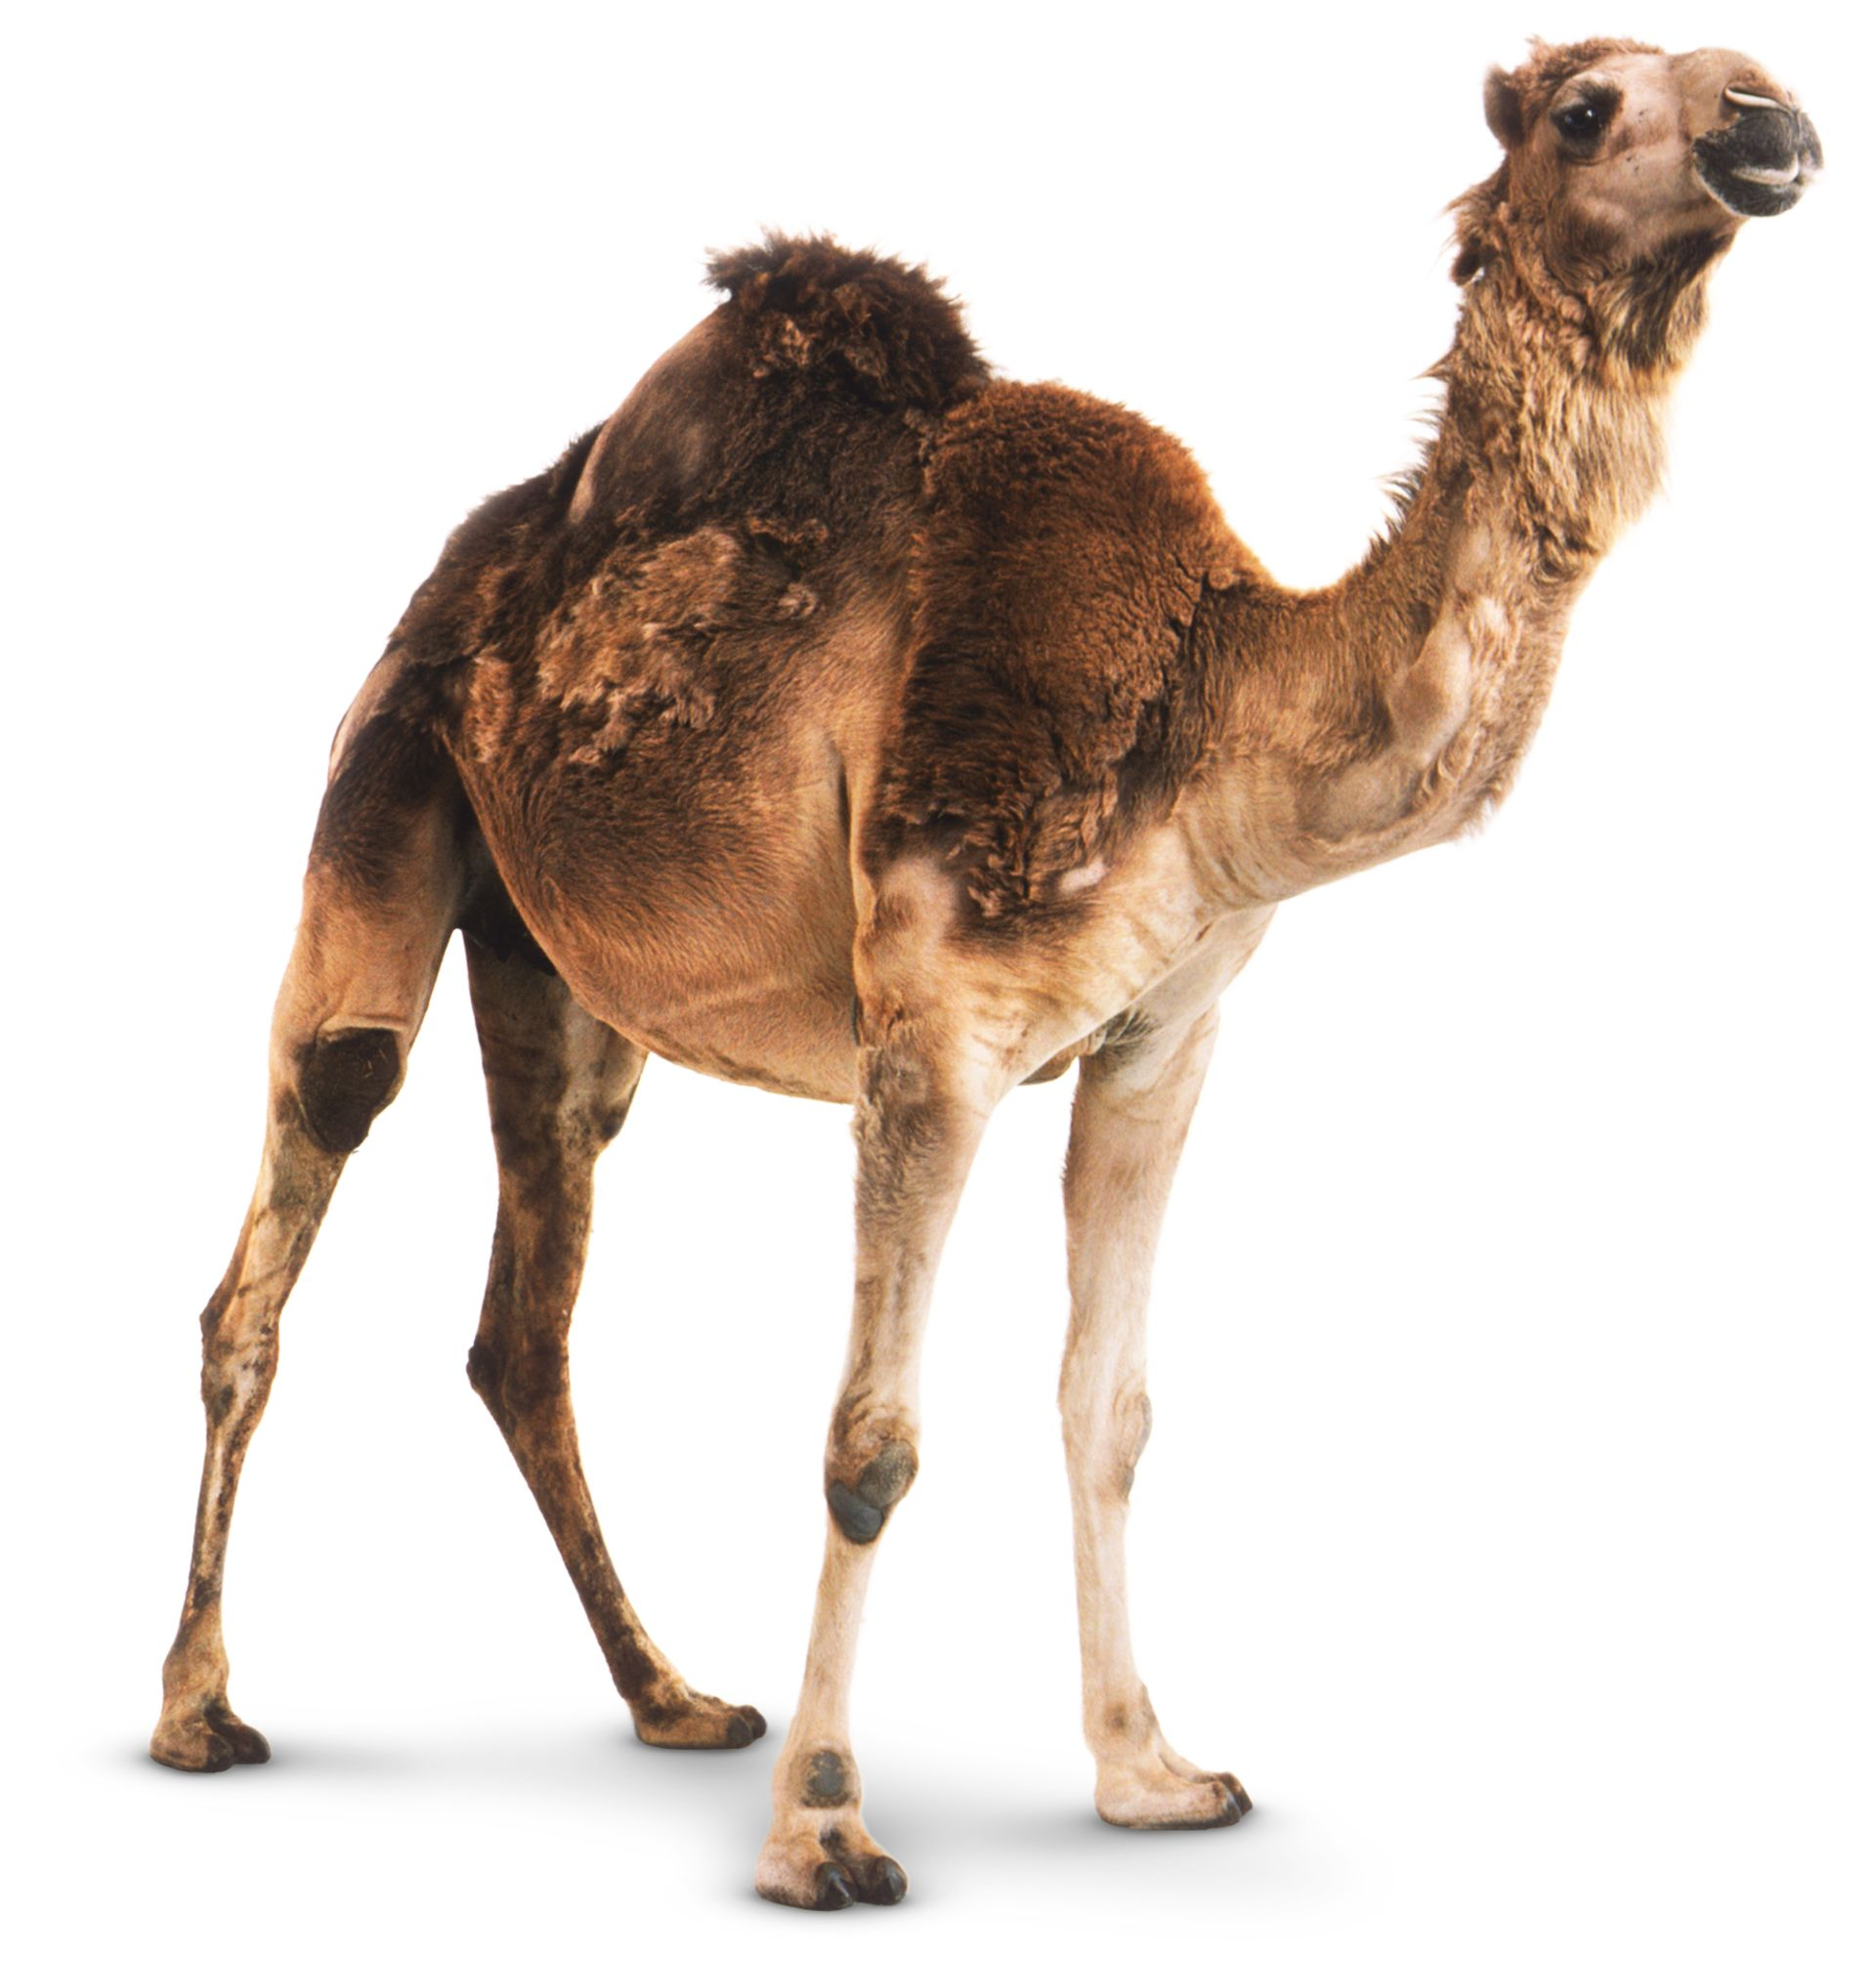 Camel Facts For Kids | Fun Facts About Camels | DK Find Out